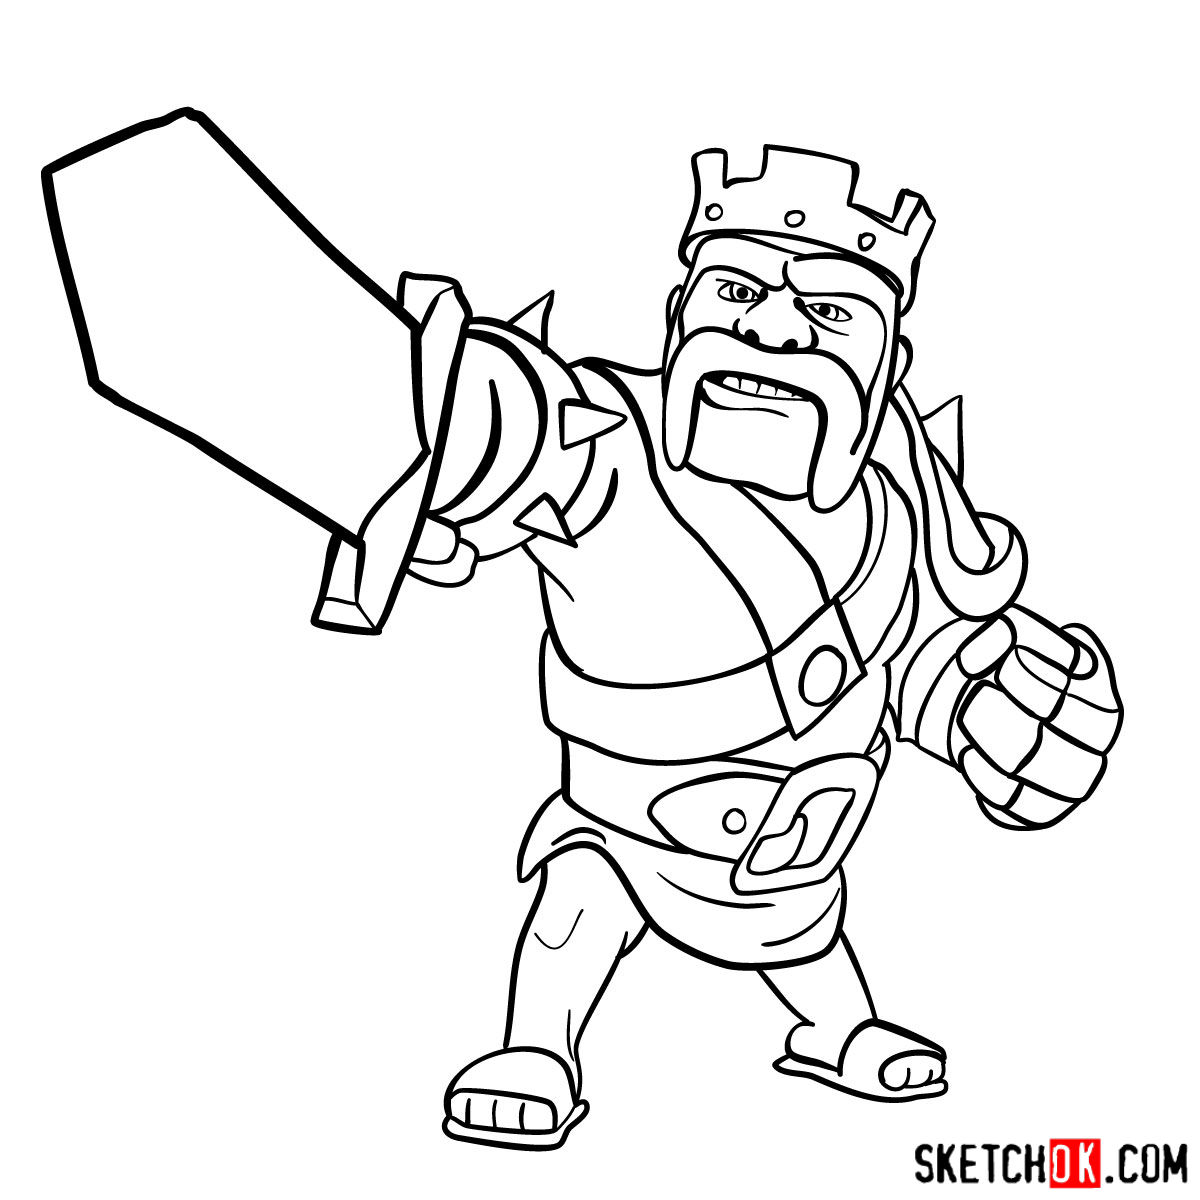 How to draw Barbarian King from CoC - step 13